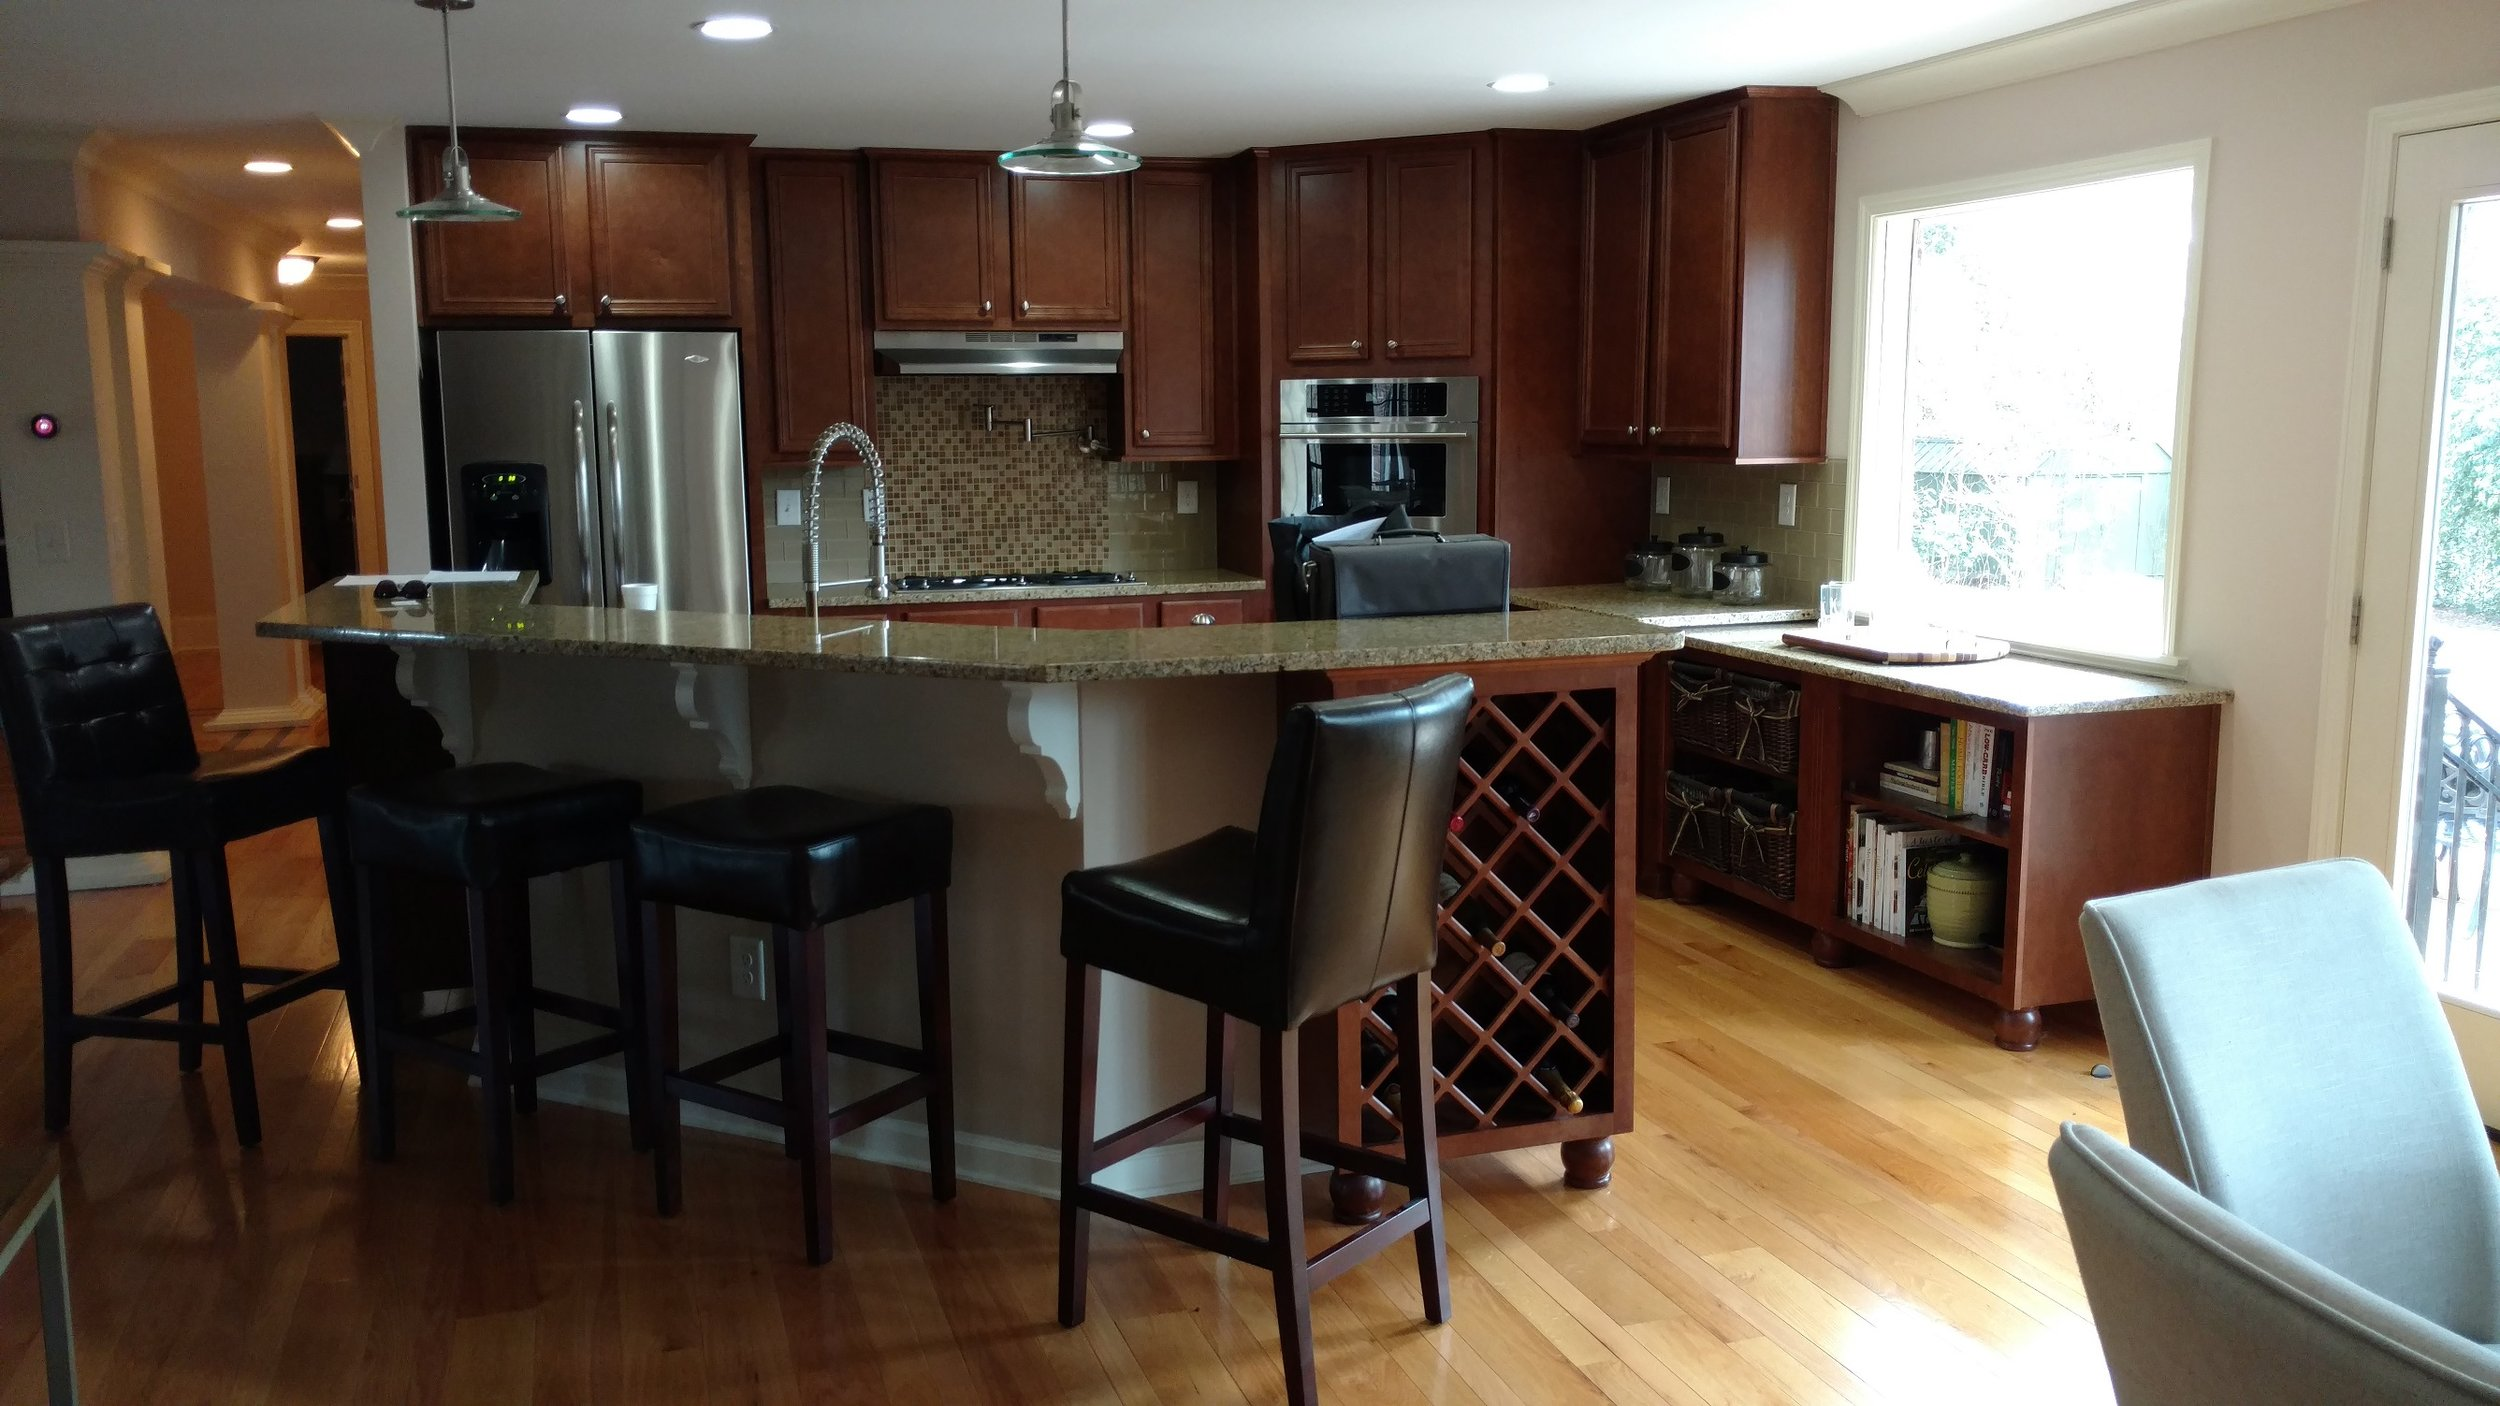 A Existing Kitchen from Breakfast area.jpg